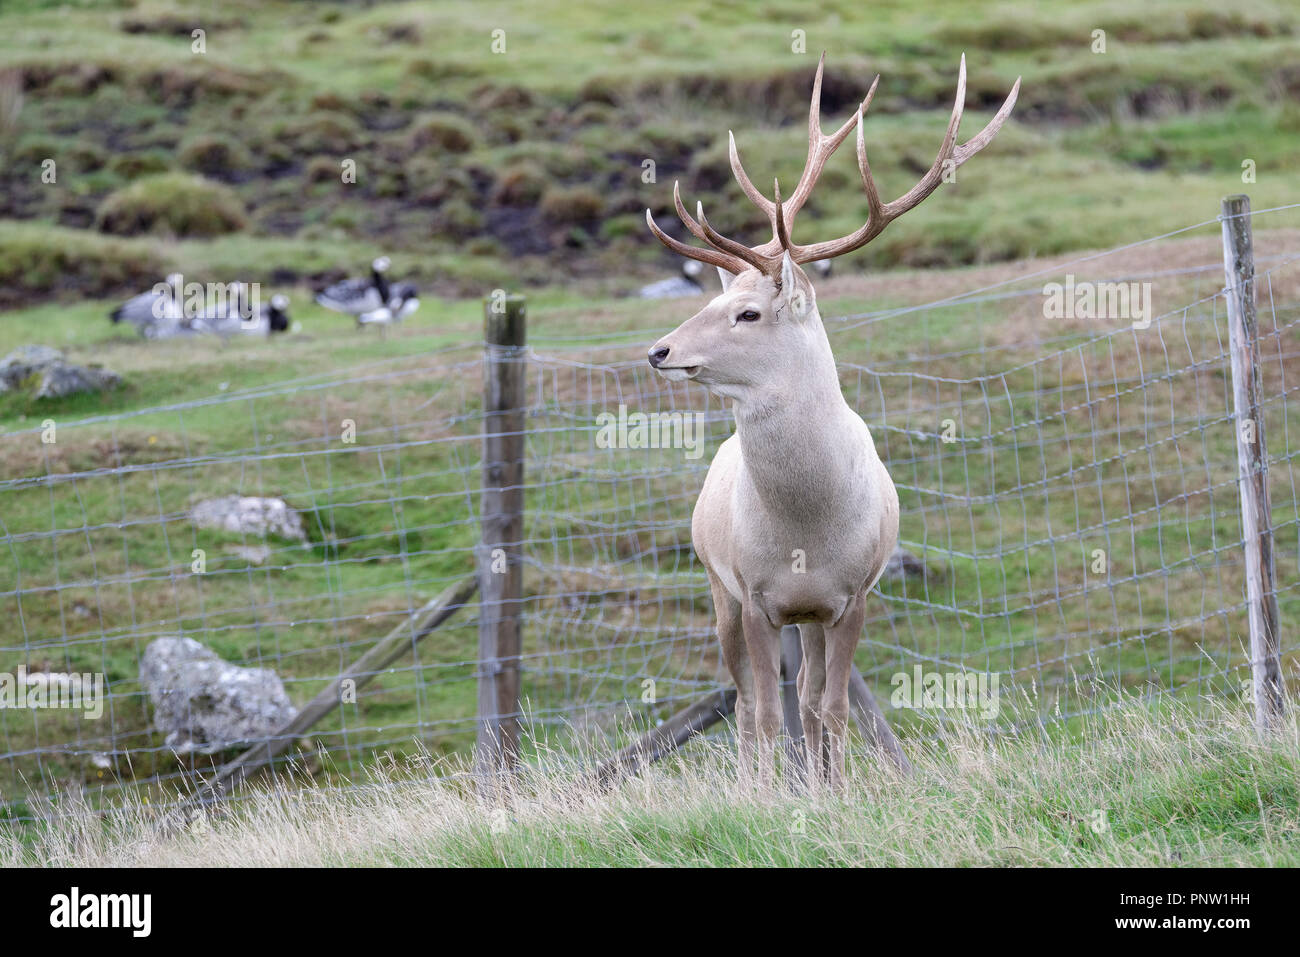 Bukhara or Bactrian Deer - Cervus elaphus bactrianus  From Central Asia - Stock Image